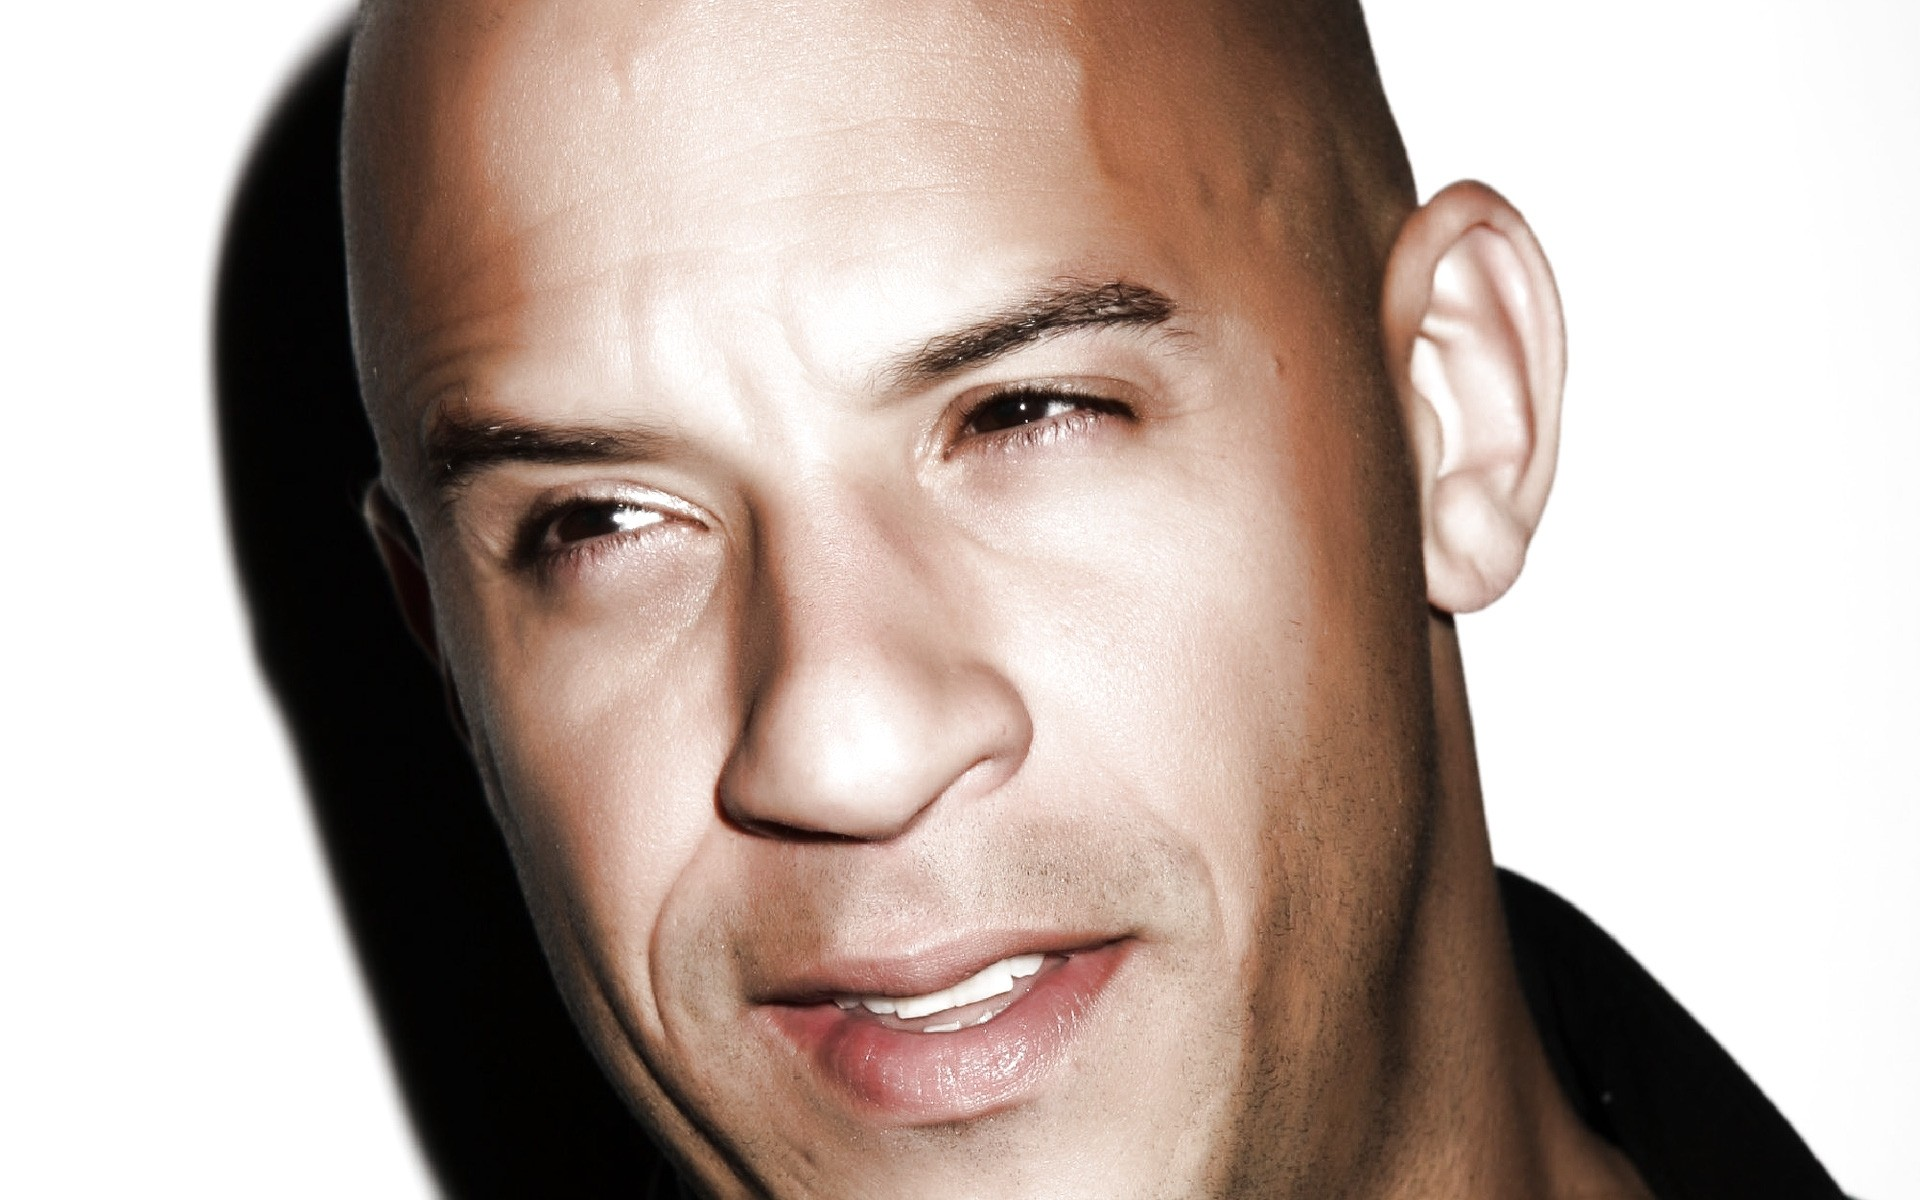 vin diesel close up. android wallpapers for free.